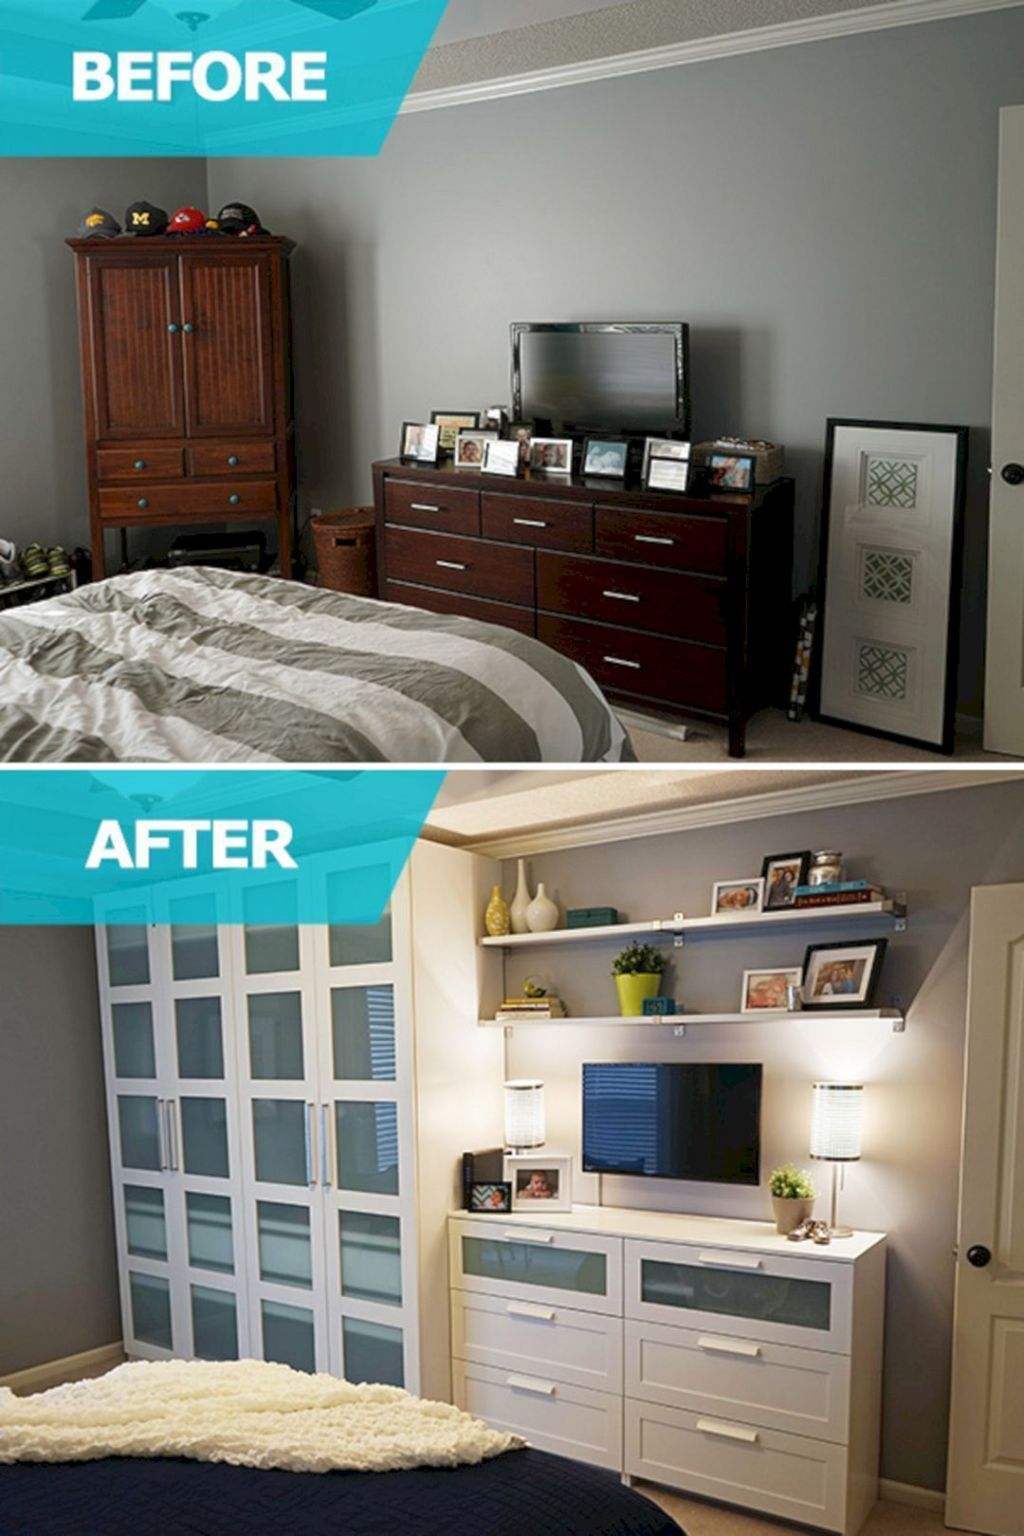 10 Storage Ideas For Small Spaces Bedroom Most Of The Amazing And Gorgeous Ikea Home Tour Small Guest Bedroom Small Master Bedroom